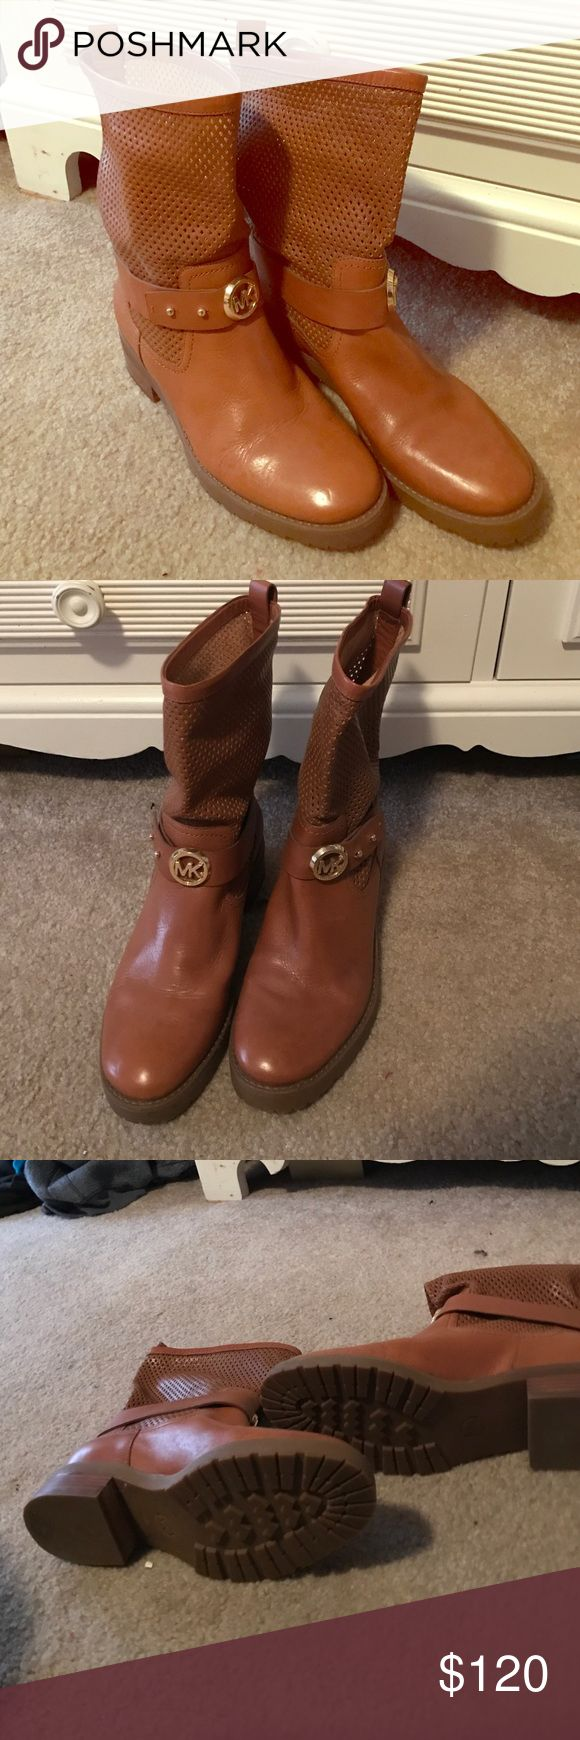 MK boots Cognac boots with mesh like top. Has buckle with MK hardware. Never wore! Just really not my style! Bottoms have no wear. In wonderful condition! Michael Kors Shoes Combat & Moto Boots